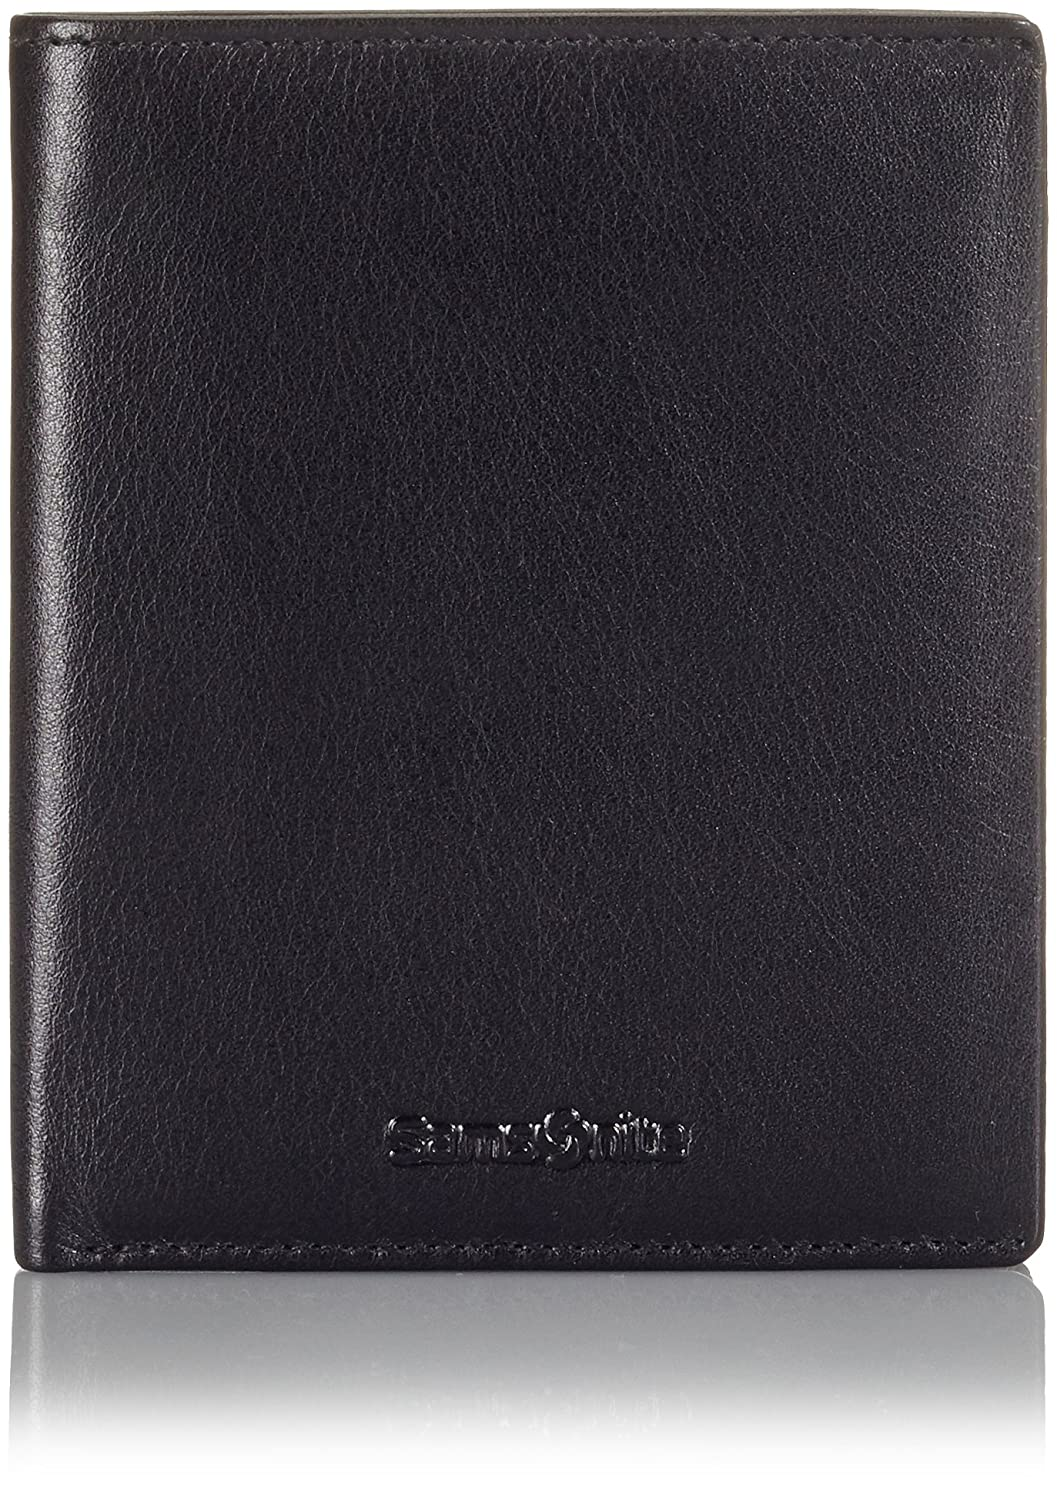 Samsonite Success SLG WAL 4CC Coin+2C Black - Monedero de Cuero Hombre